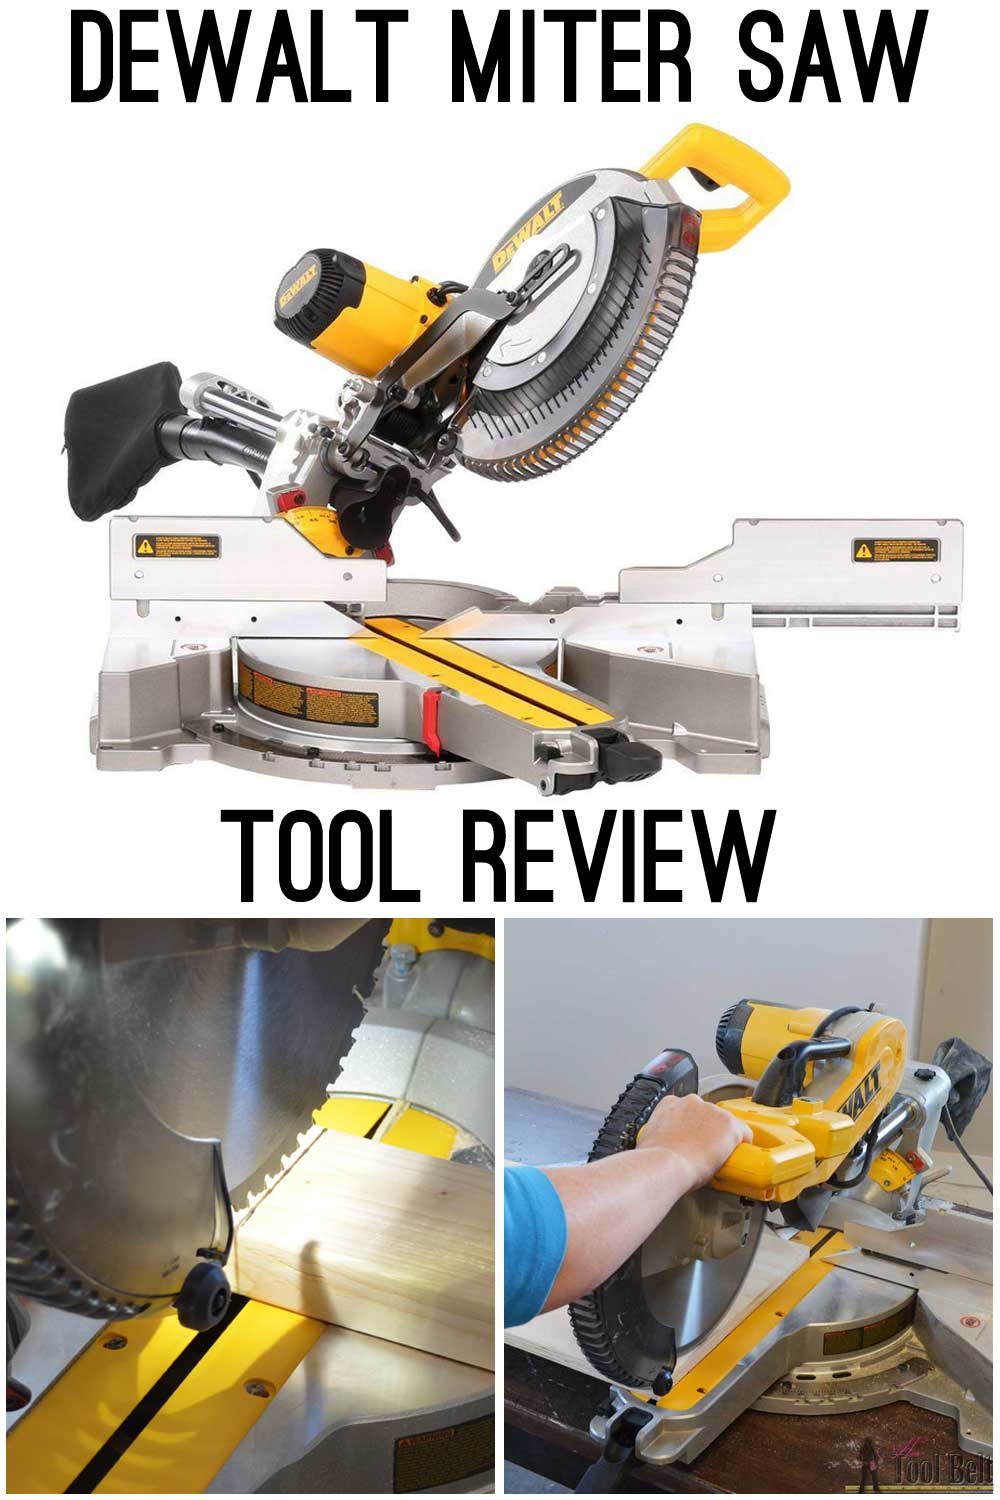 Dewalt dws780 12 dual bevel compound miter saw review her tool belt if youre looking for a top quality miter saw that is easy to use greentooth Images